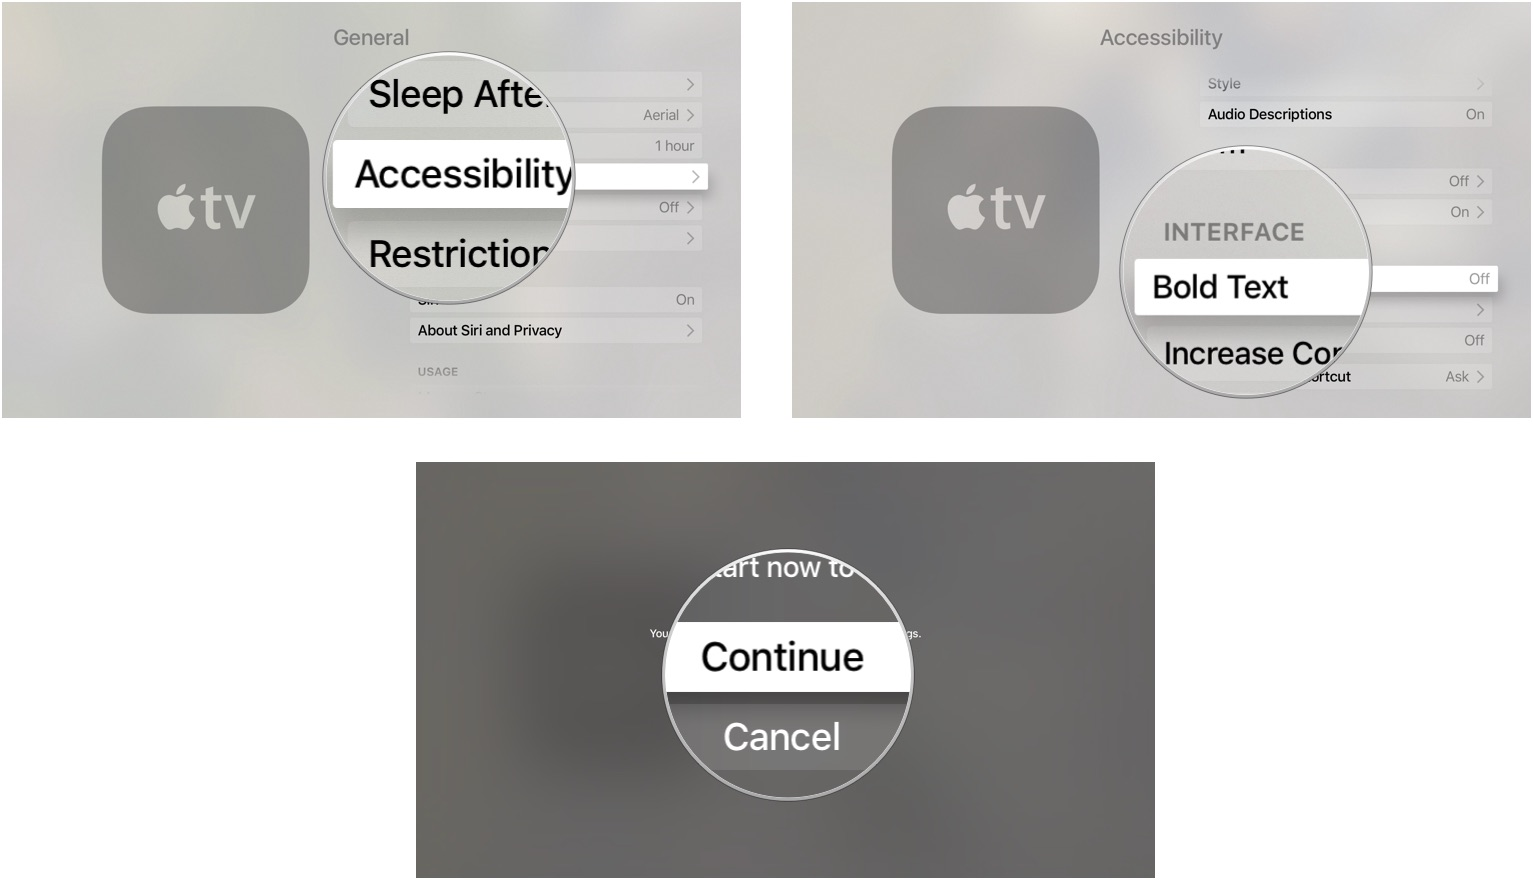 hight resolution of enabling bold text on apple tv